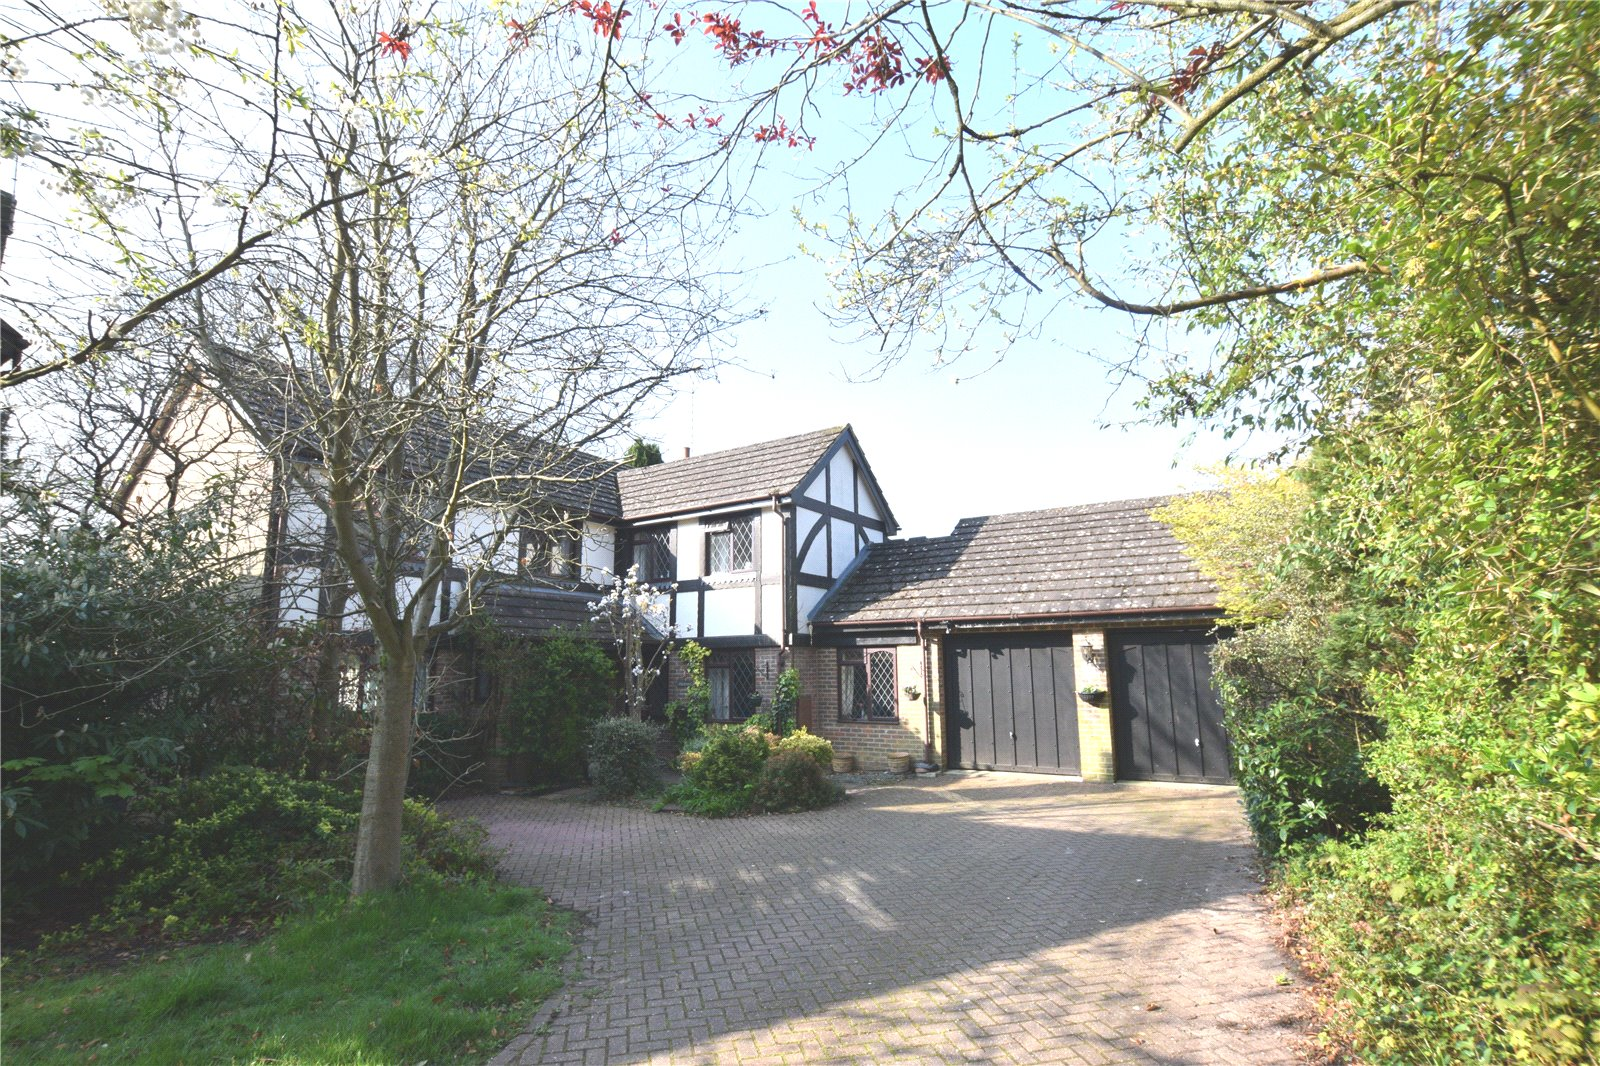 5 Bedrooms Detached House for sale in Foxdown Close, Camberley, Surrey, GU15